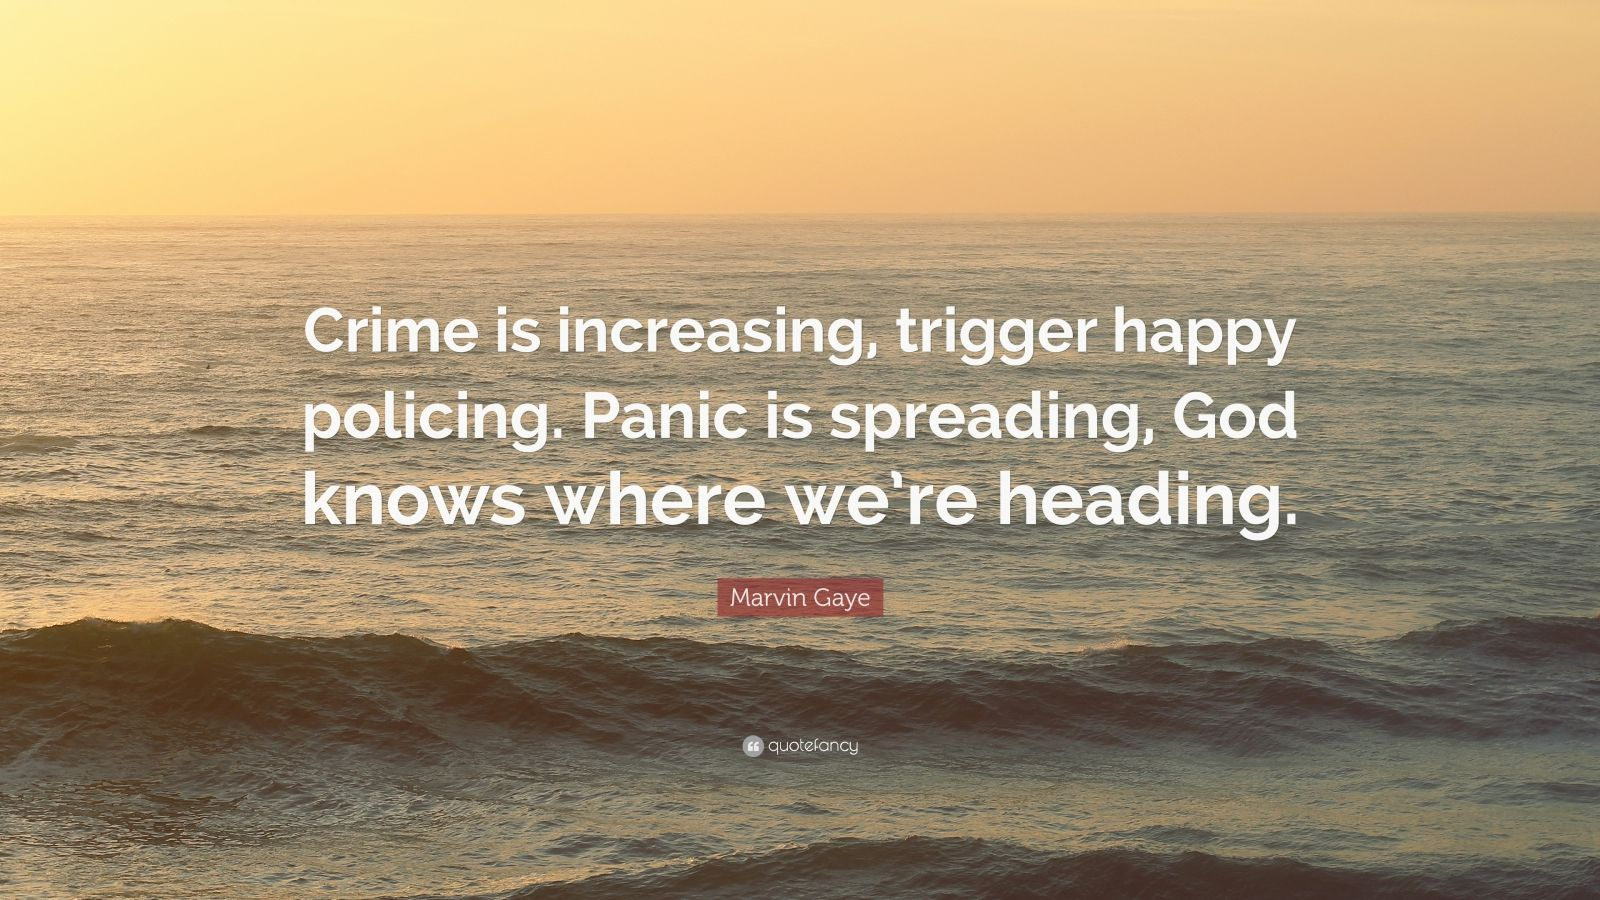 """Marvin Gaye Quote: """"Crime is increasing, trigger happy policing. Panic is spreading, God knows where we're heading."""""""